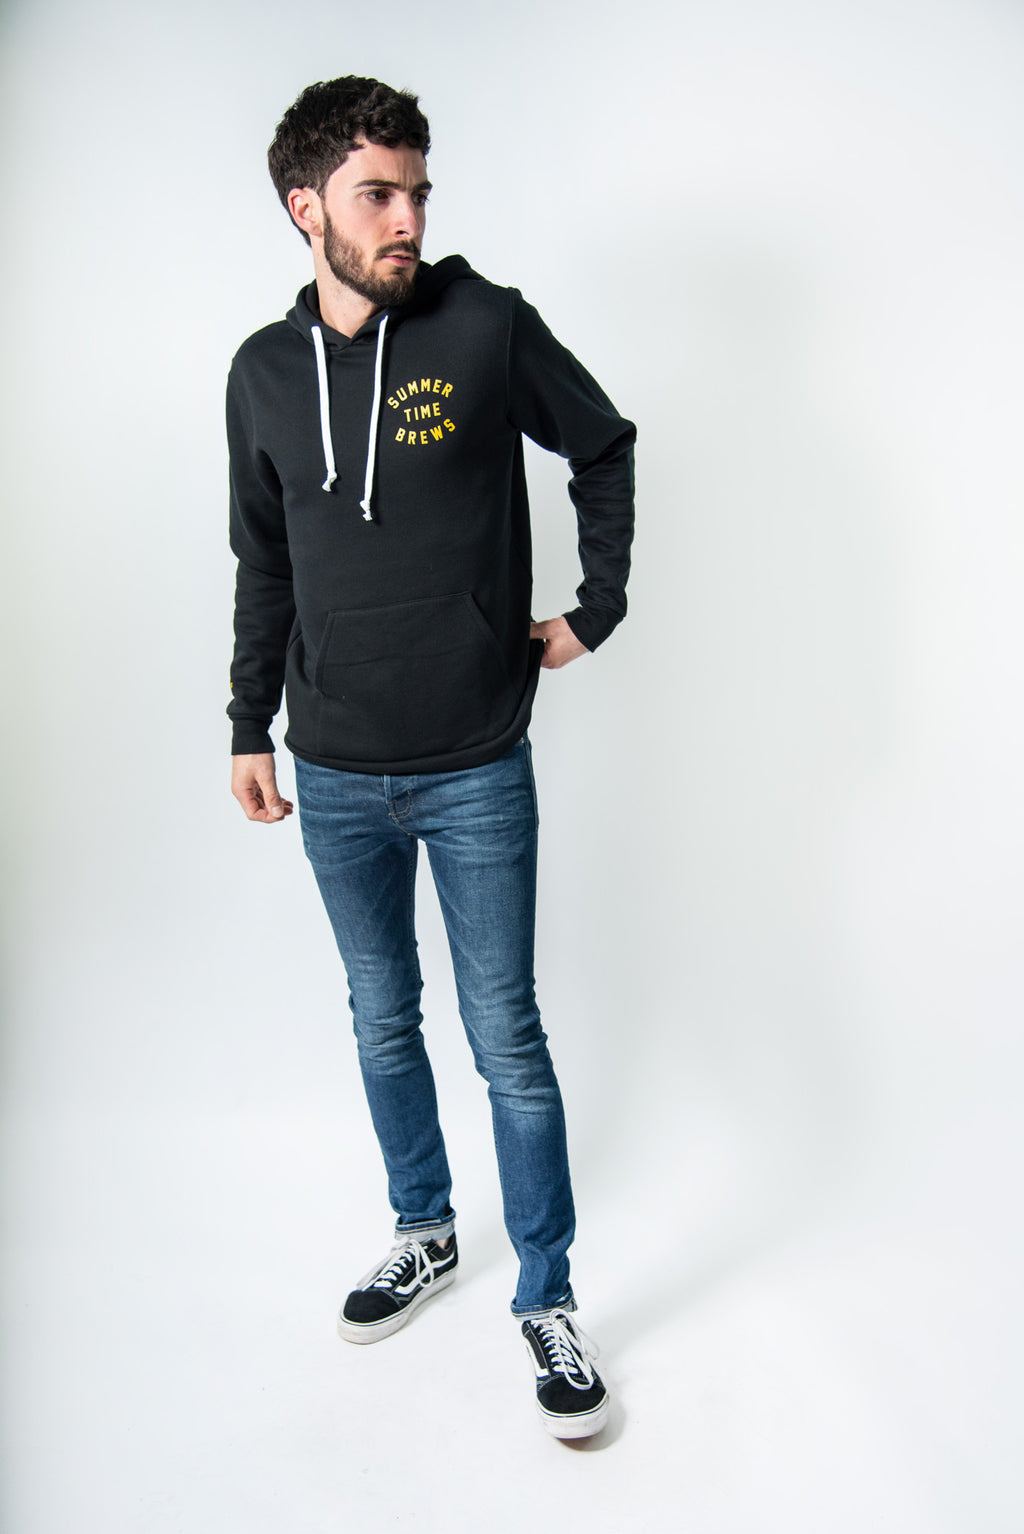 SUMMER TIME BREWS HOODIE BLACK